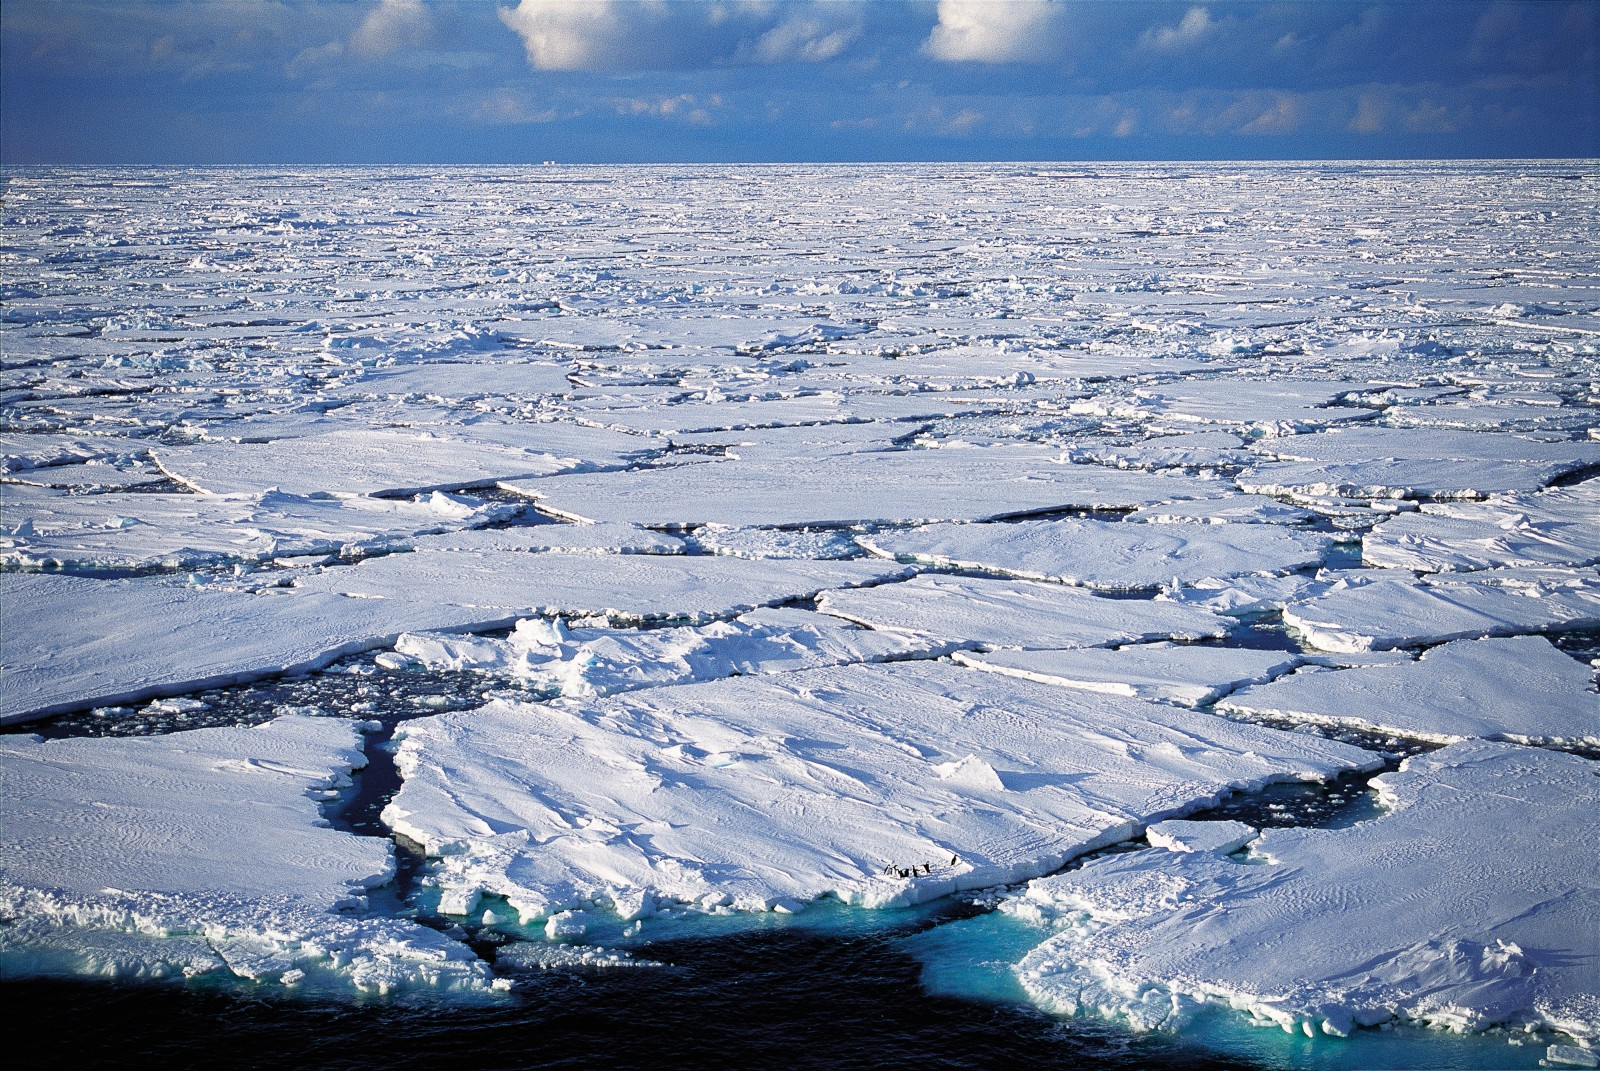 Sea ice is the Adèlie's home turf. The birds hunt in the cracks and hop on to the floes to rest or evade predators. Early in the breeding season, the journey from rookery to sea can be amazingly far. Females heading for the feeding grounds after laying their eggs have been radio-tracked walking across 250 to 350 km of fast ice and pack ice, covering the distance at an average speed of 2.4 km/h Their mates, on incubation duty, must withstand whatever nature throws at them, including being snowed in.